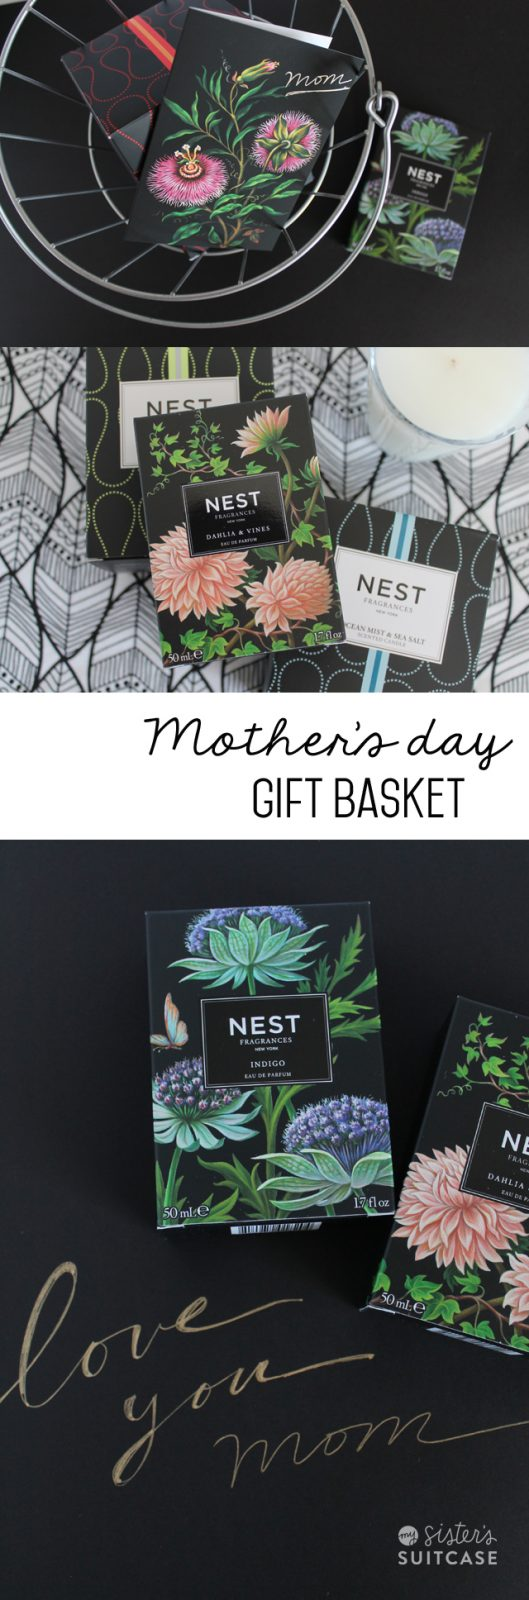 mothers day fragrance gift basket